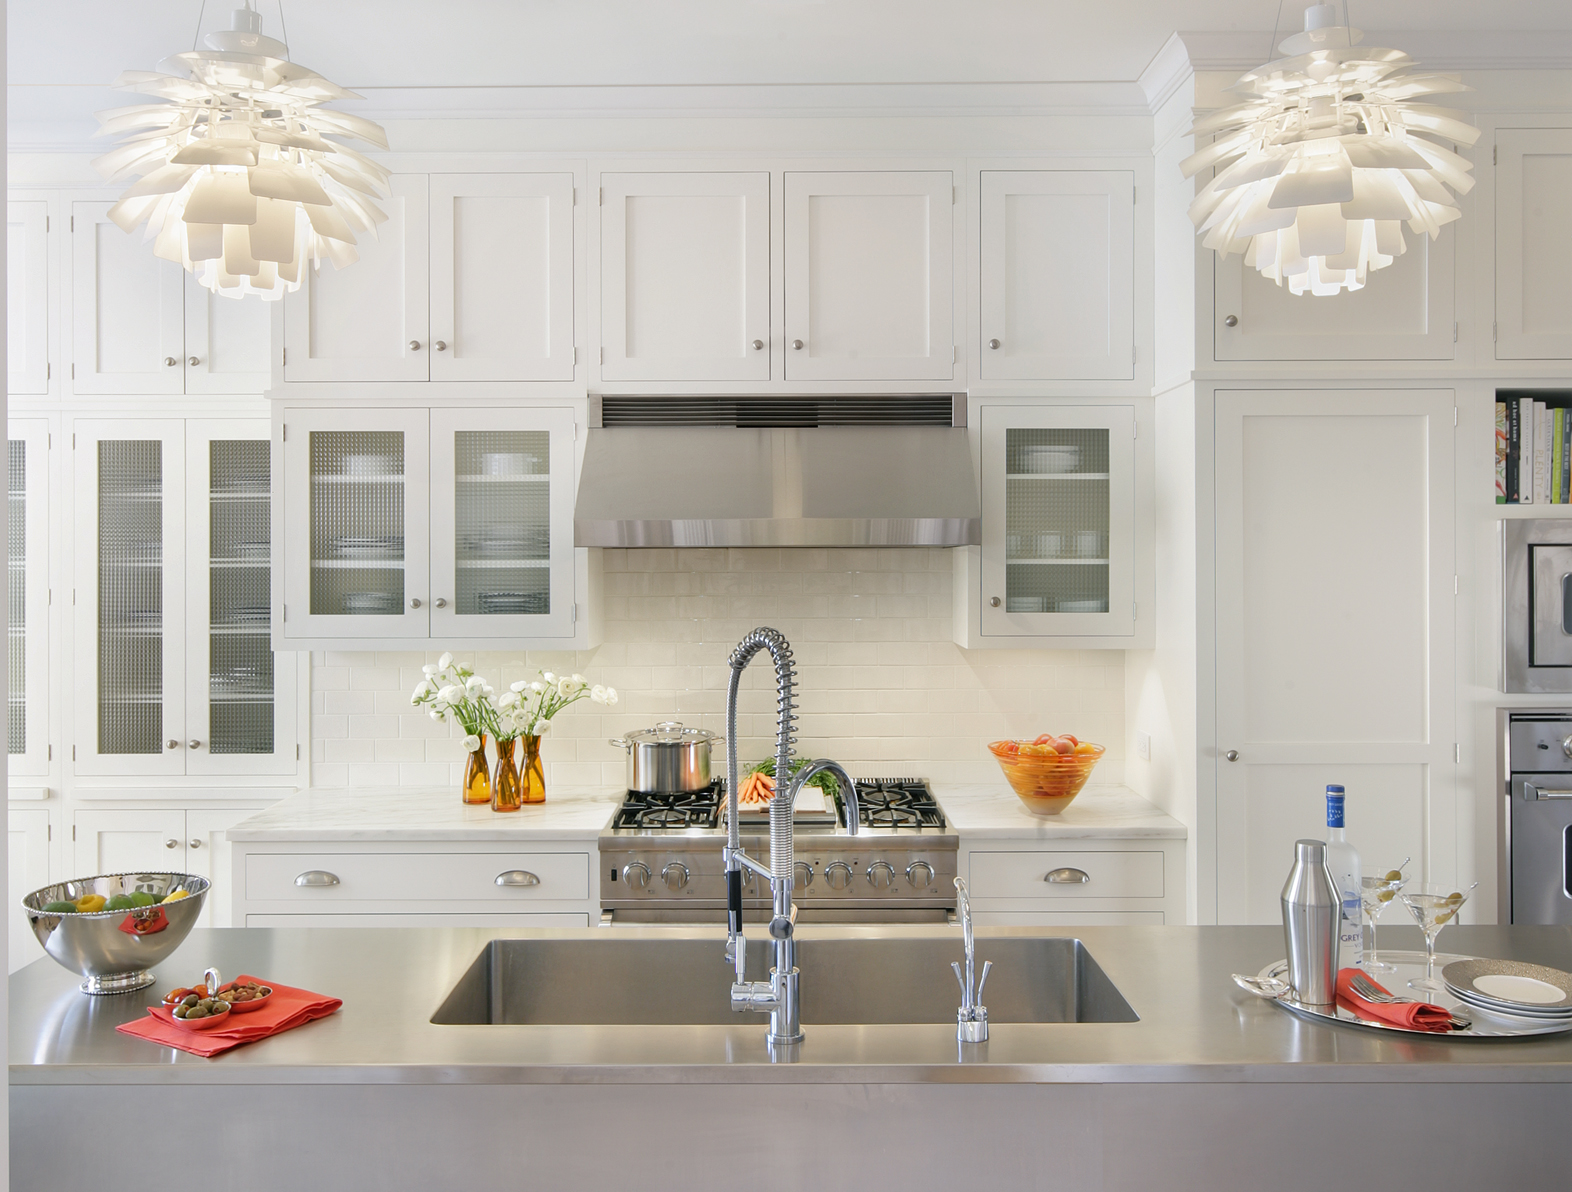 Renovating for Resale: Kitchen Design Pro-Tips - The Deanna Kory Team